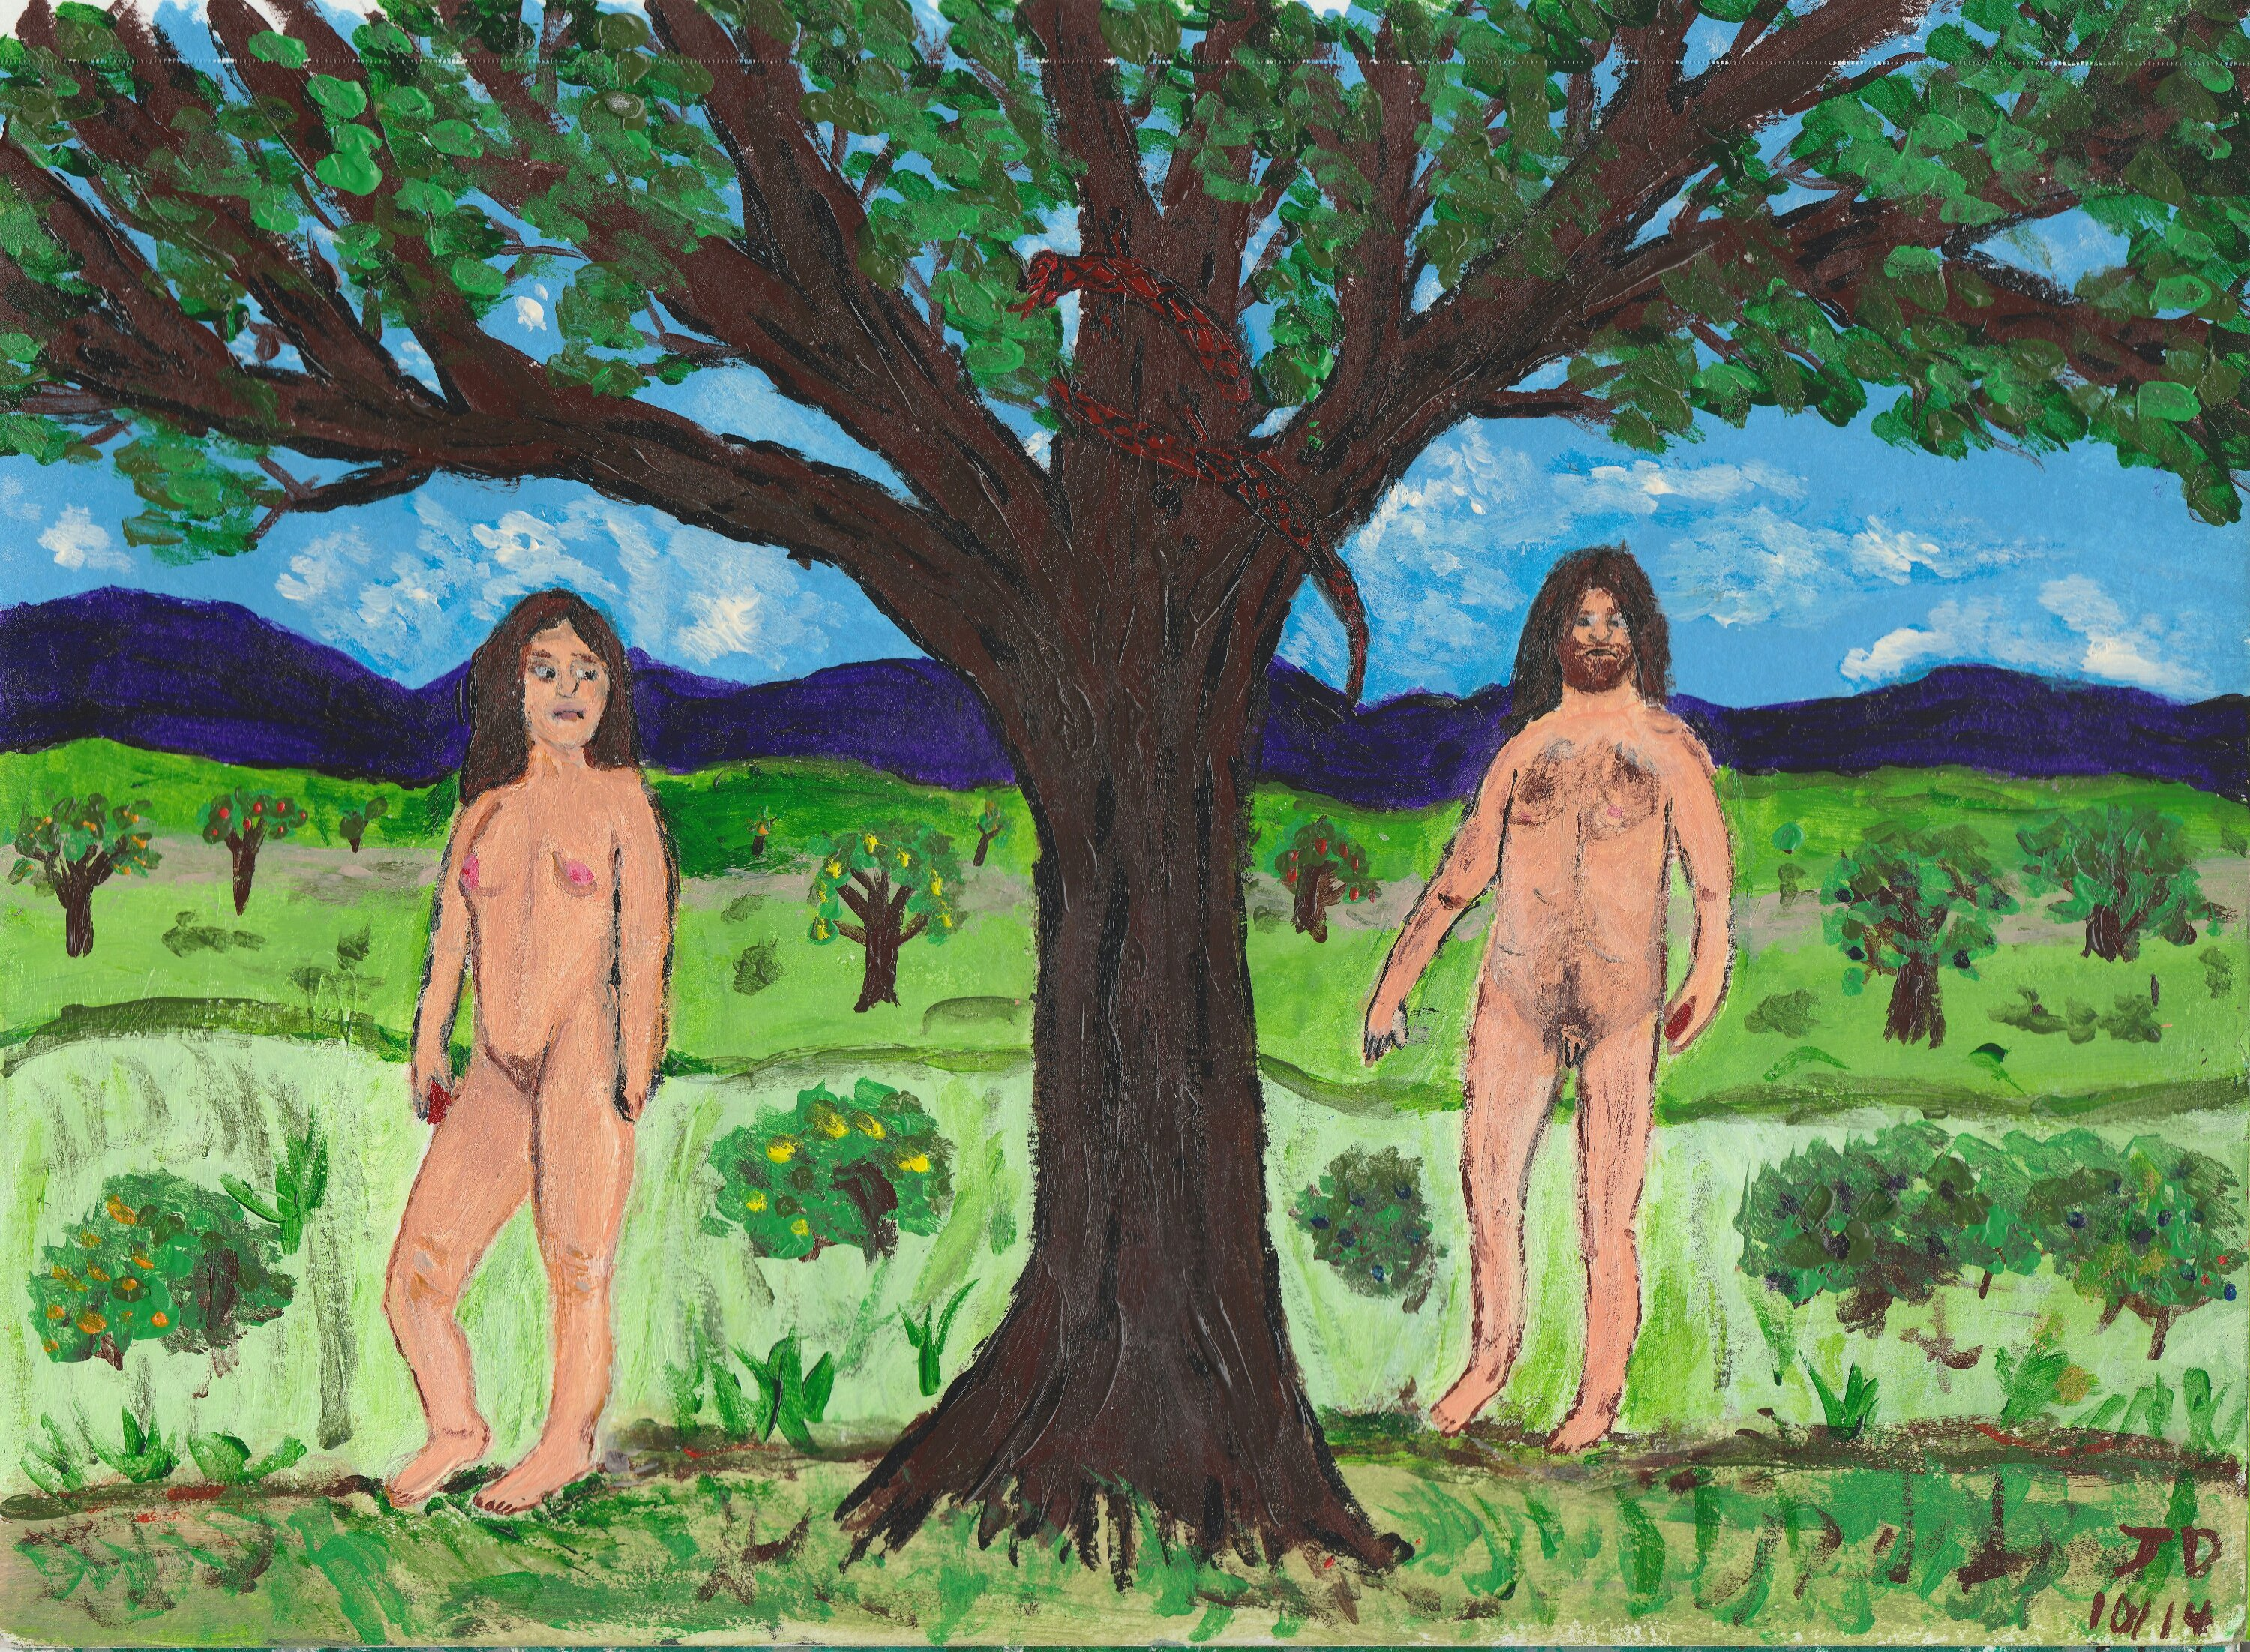 Genetic adam and eve traced but they didn't know each other